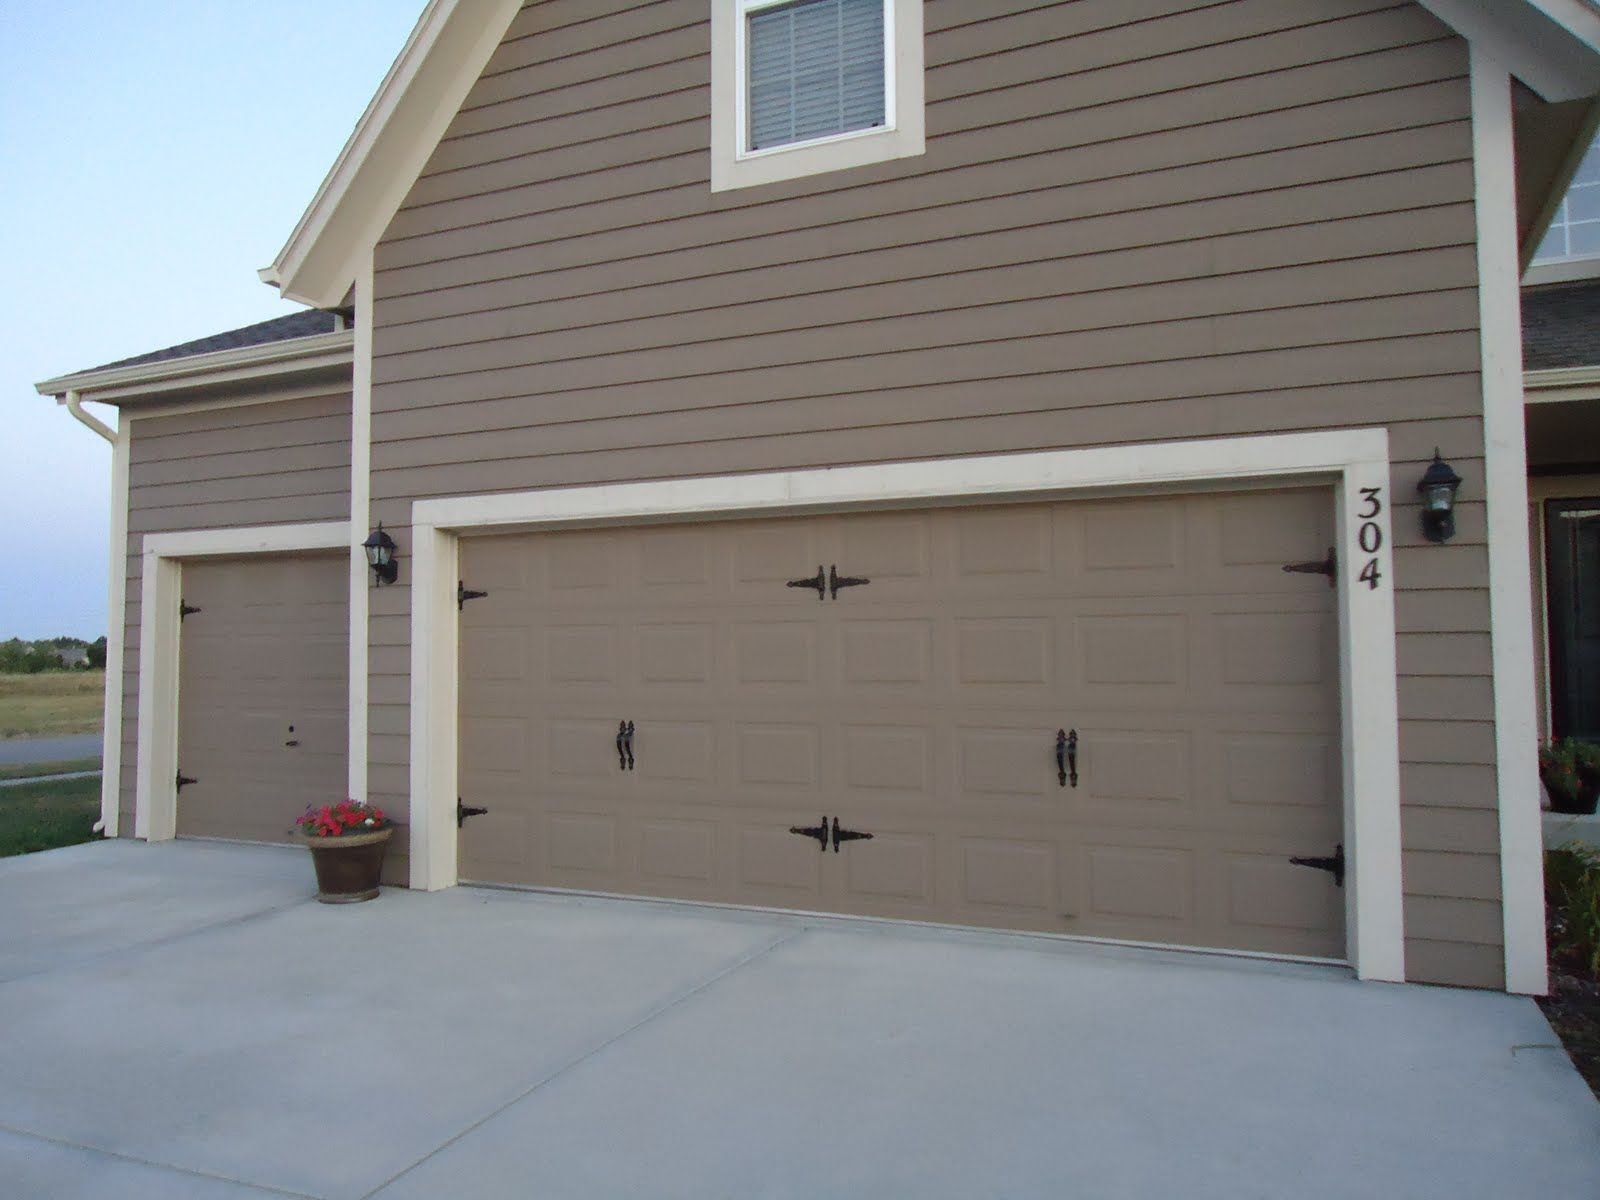 design ideas exterior driveway modern best stone car decoration door garage and luxury pavers grey house white trim with